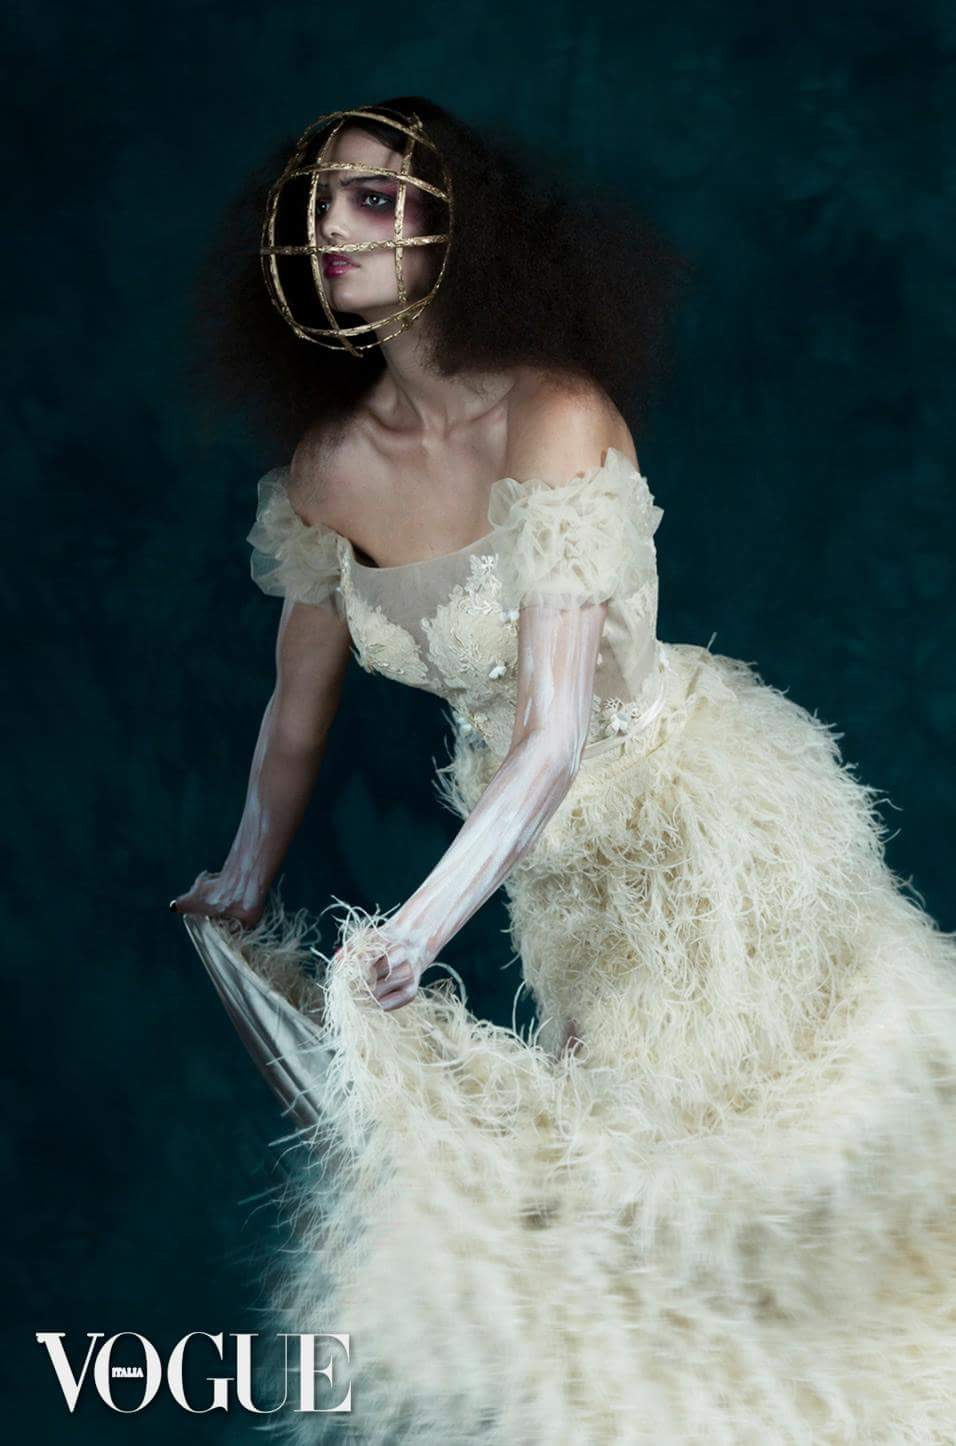 Photographer - Lori Cicchini / Vogue Italia